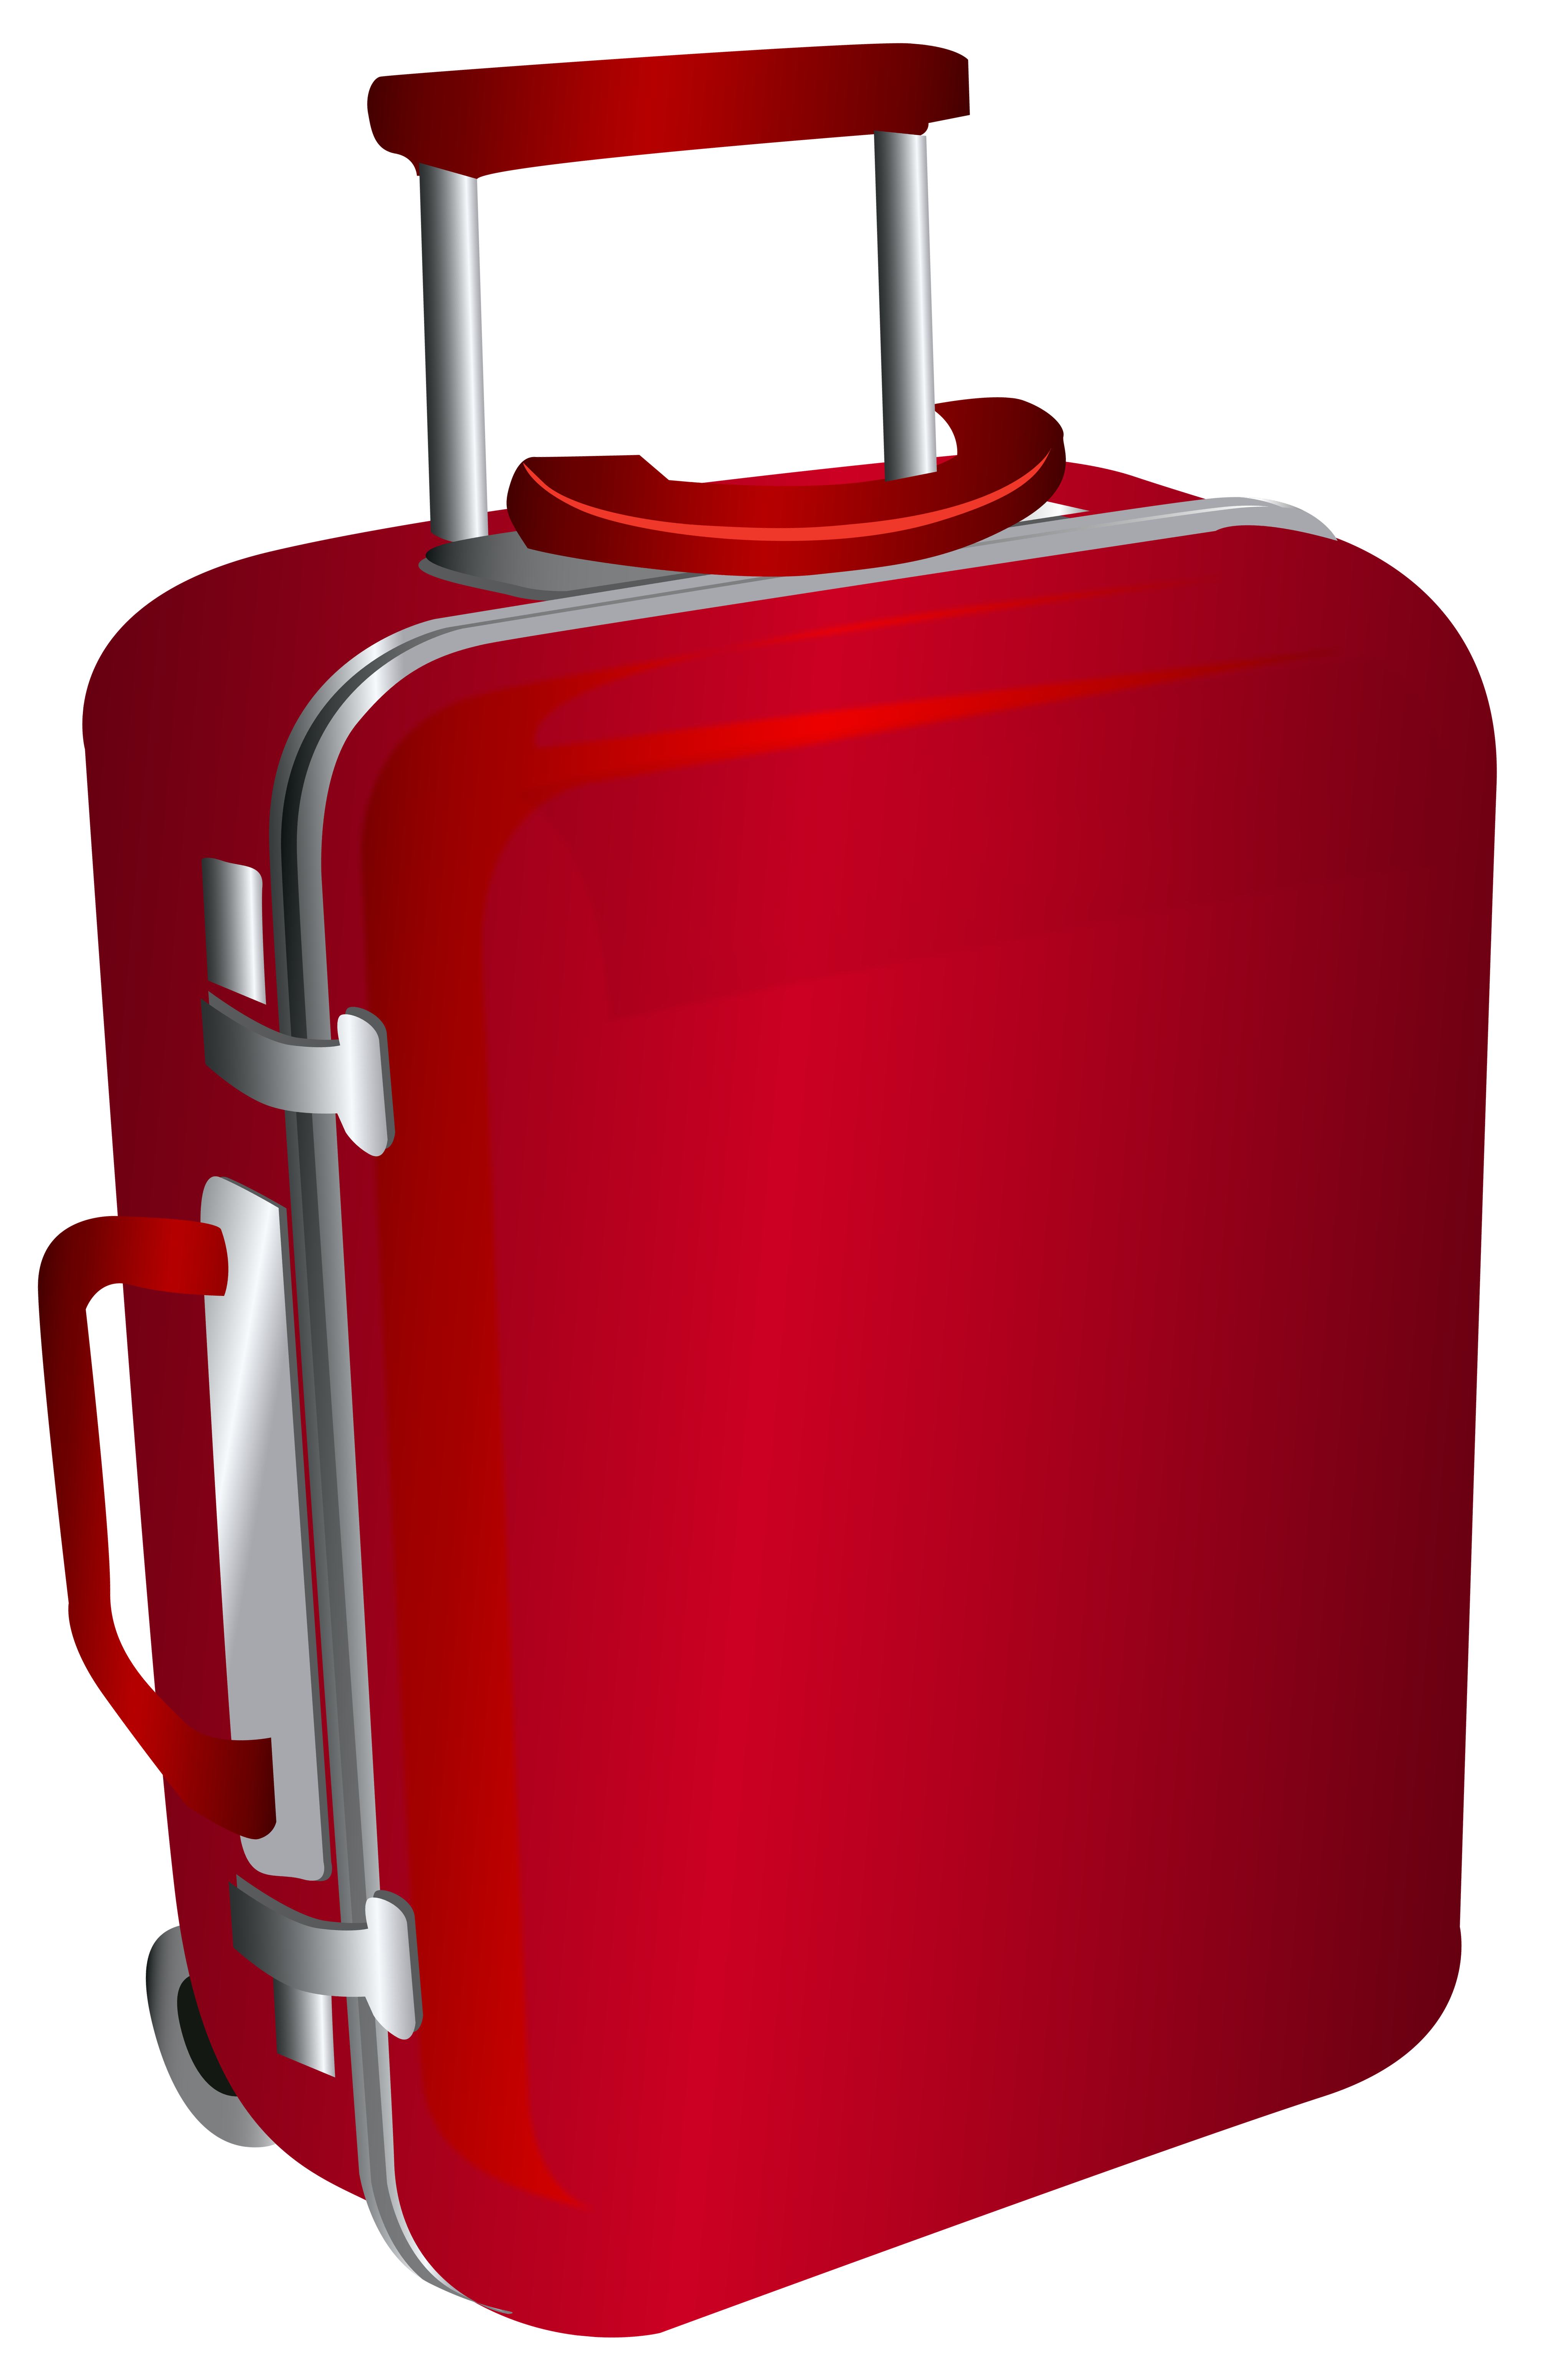 banner royalty free library Red trolley travel bag. Luggage clipart border.